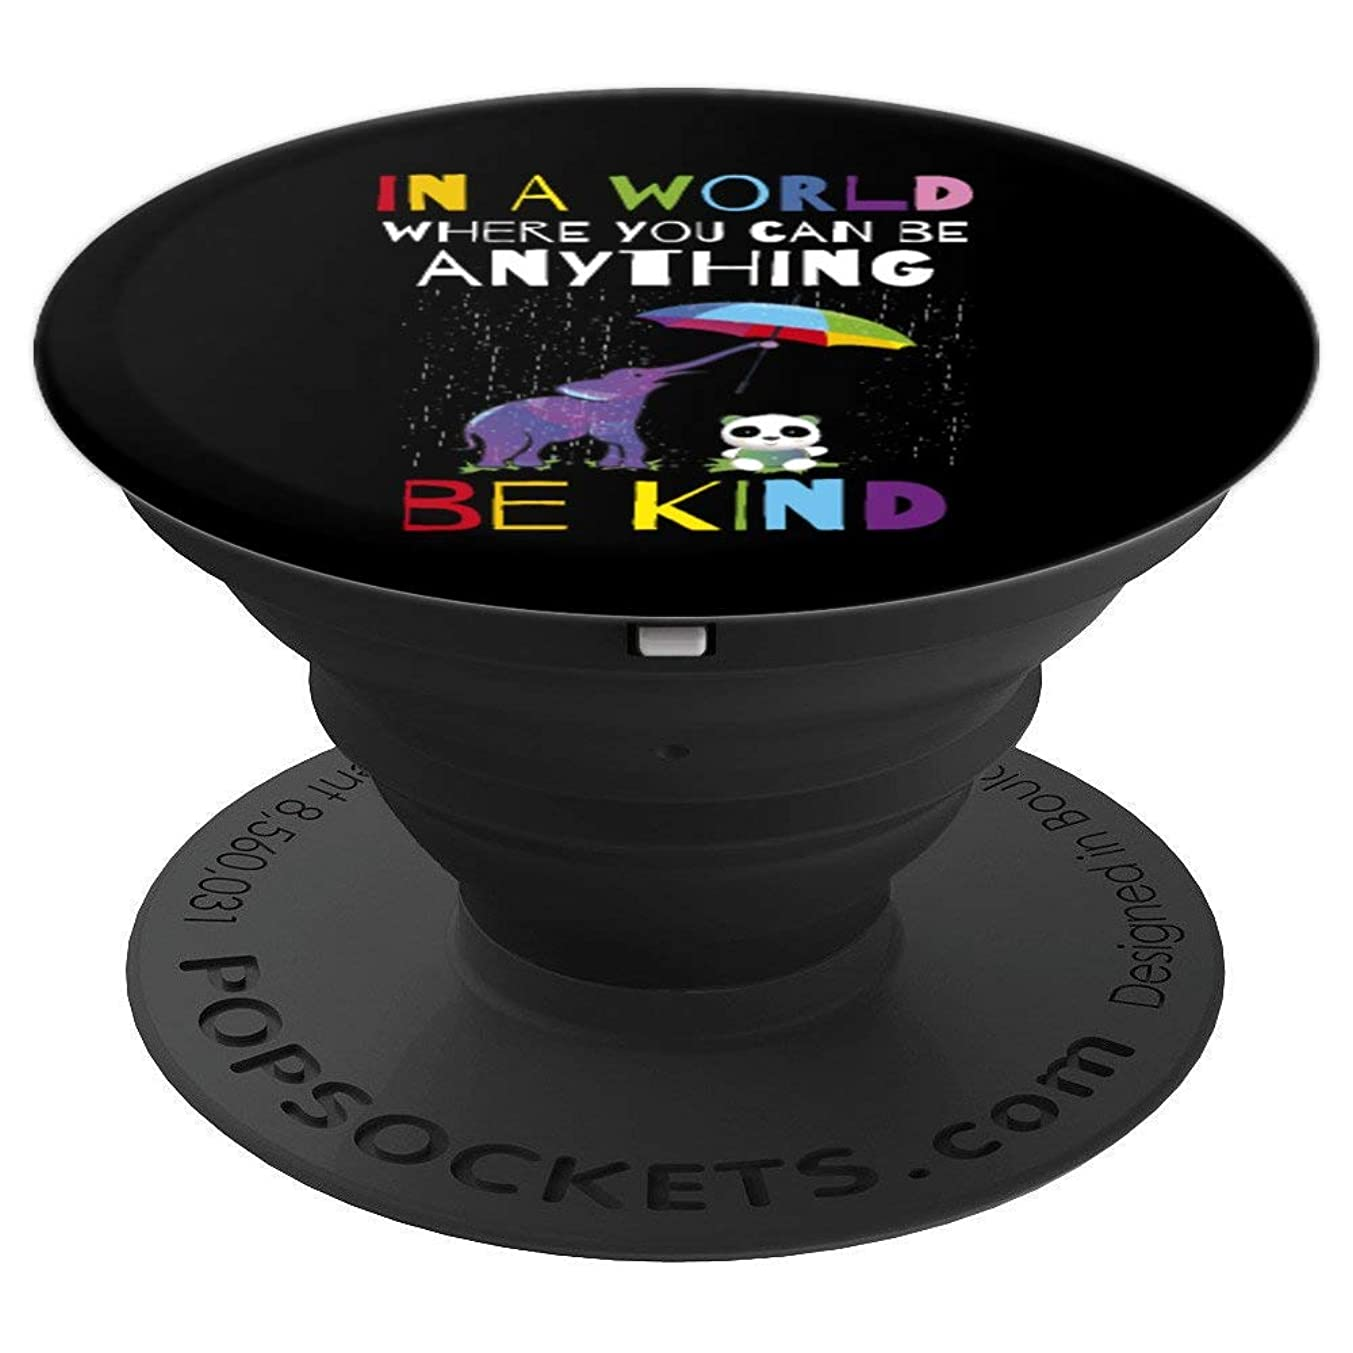 In A World Where You Can Be Anything Be Kind - PopSockets Grip and Stand for Phones and Tablets